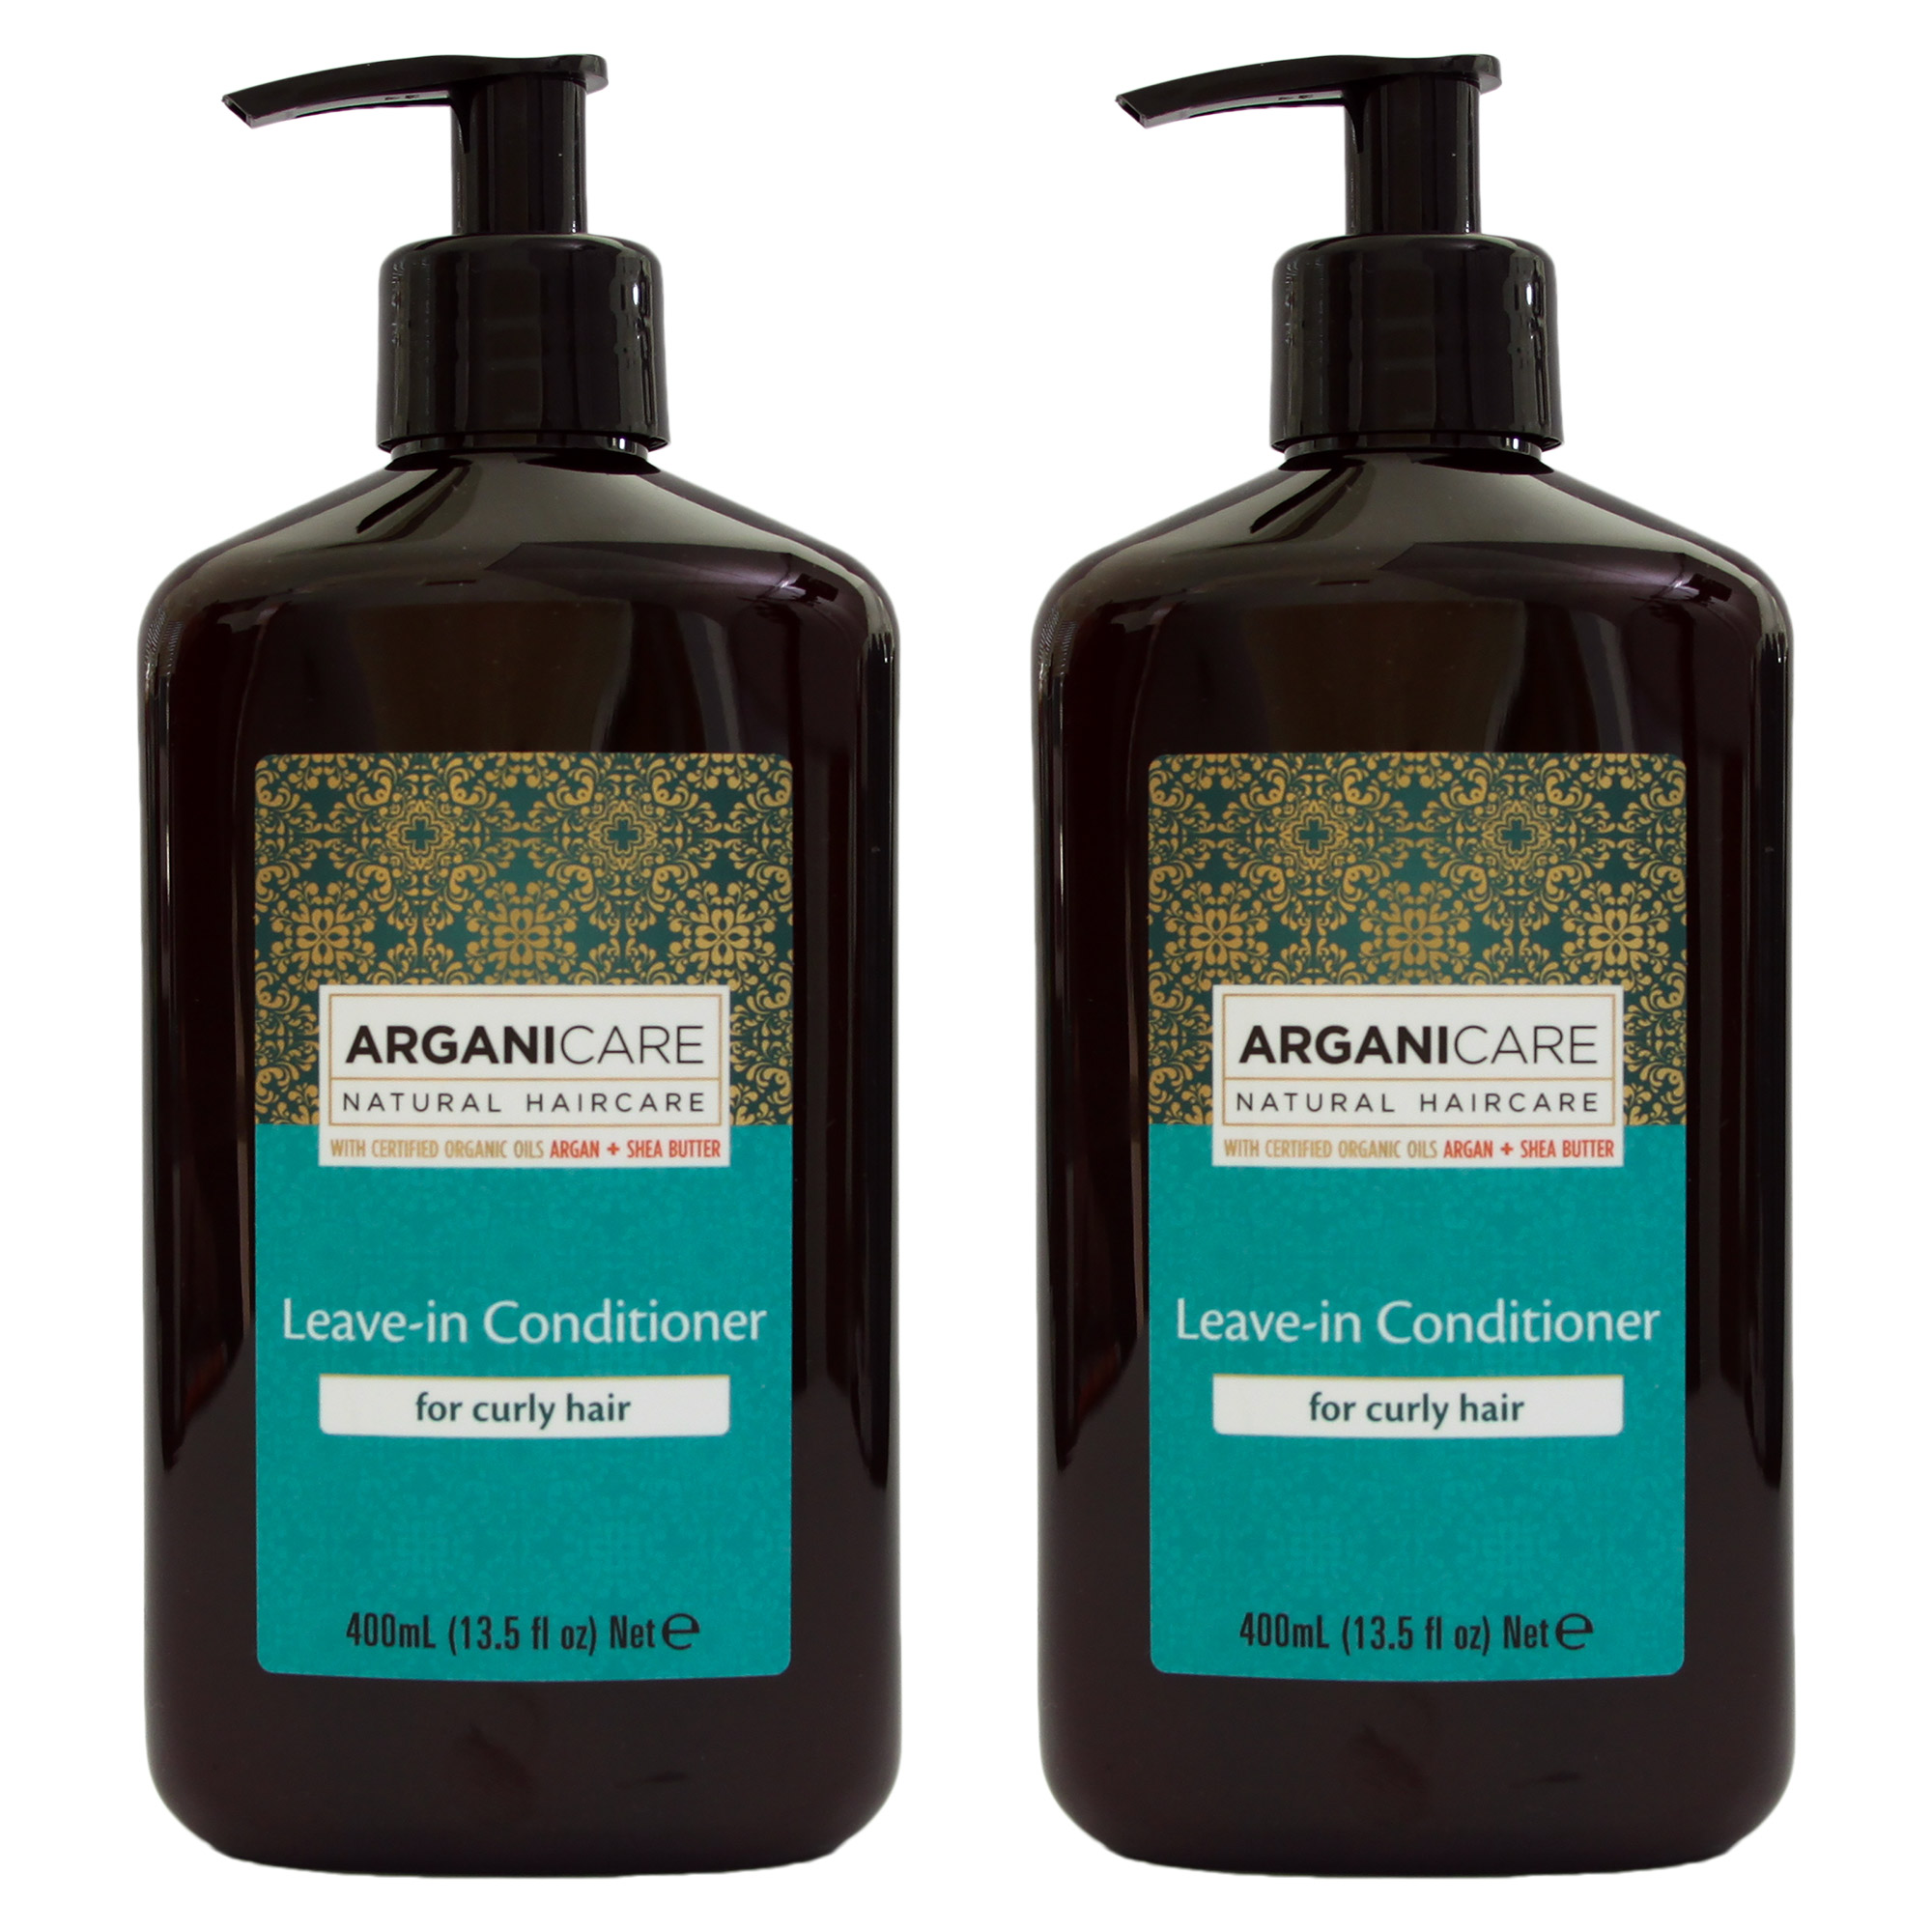 Arganicare Leave in Conditioner for Curly Hair Enriched with Organic Argan Oil. 13.5 fl. Oz. 2 Pack Bundle